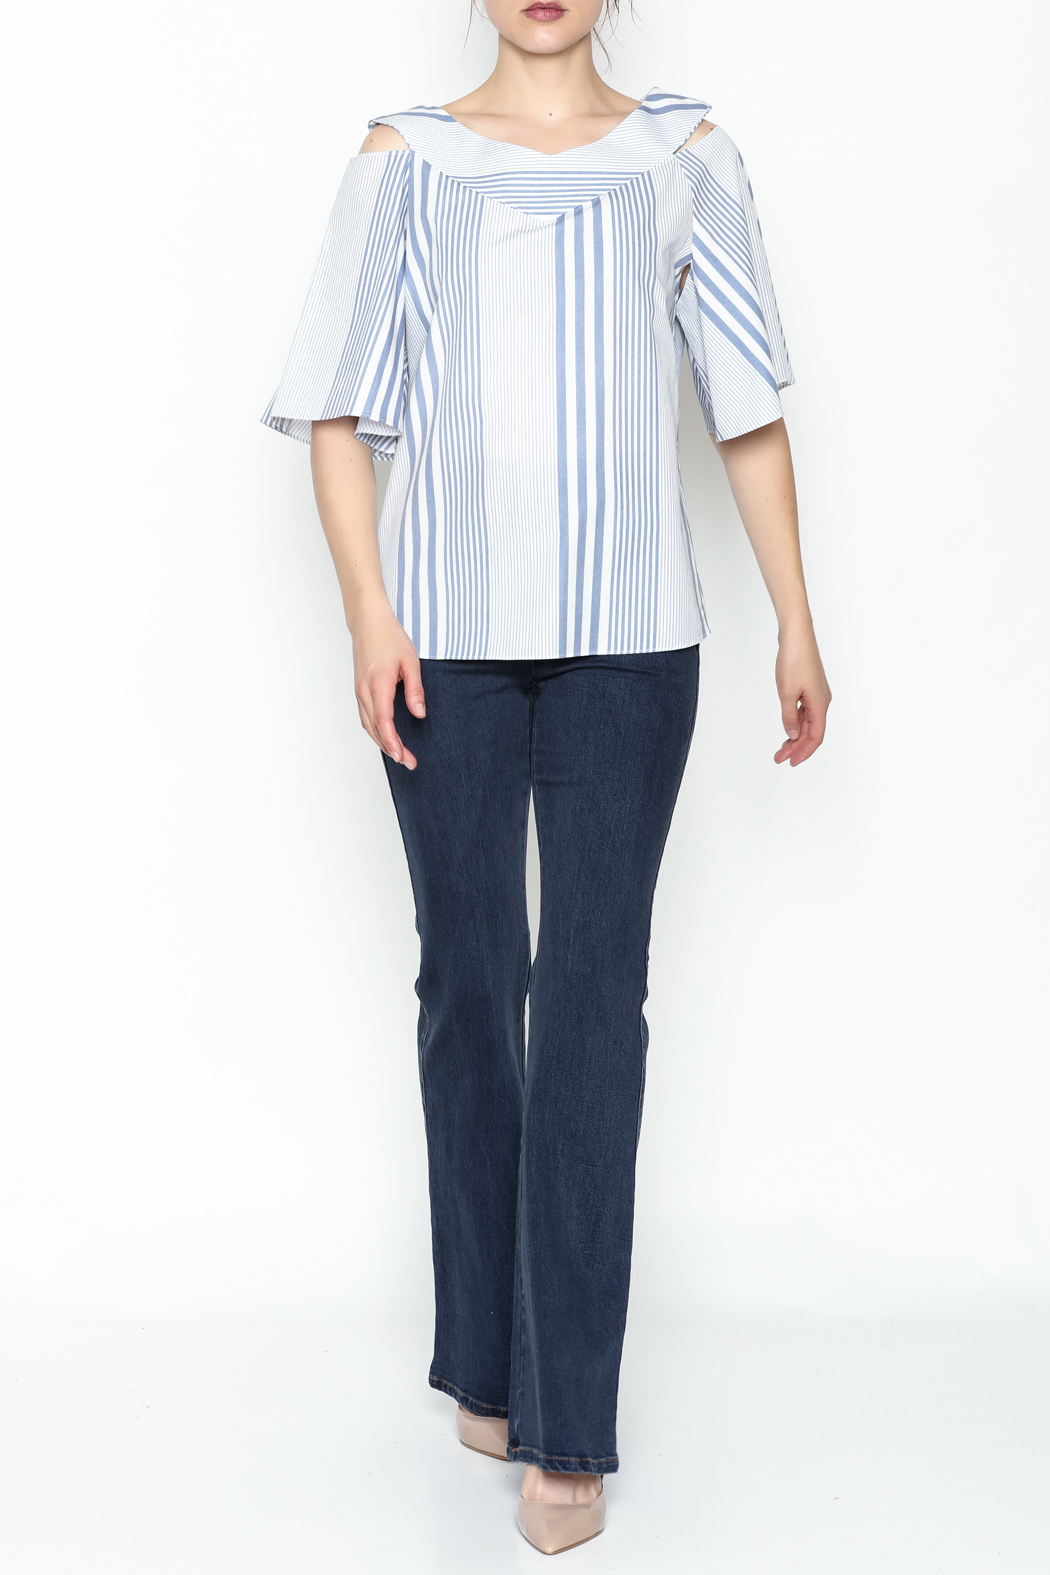 Pinkyotto Striped Ruffle Top - Side Cropped Image